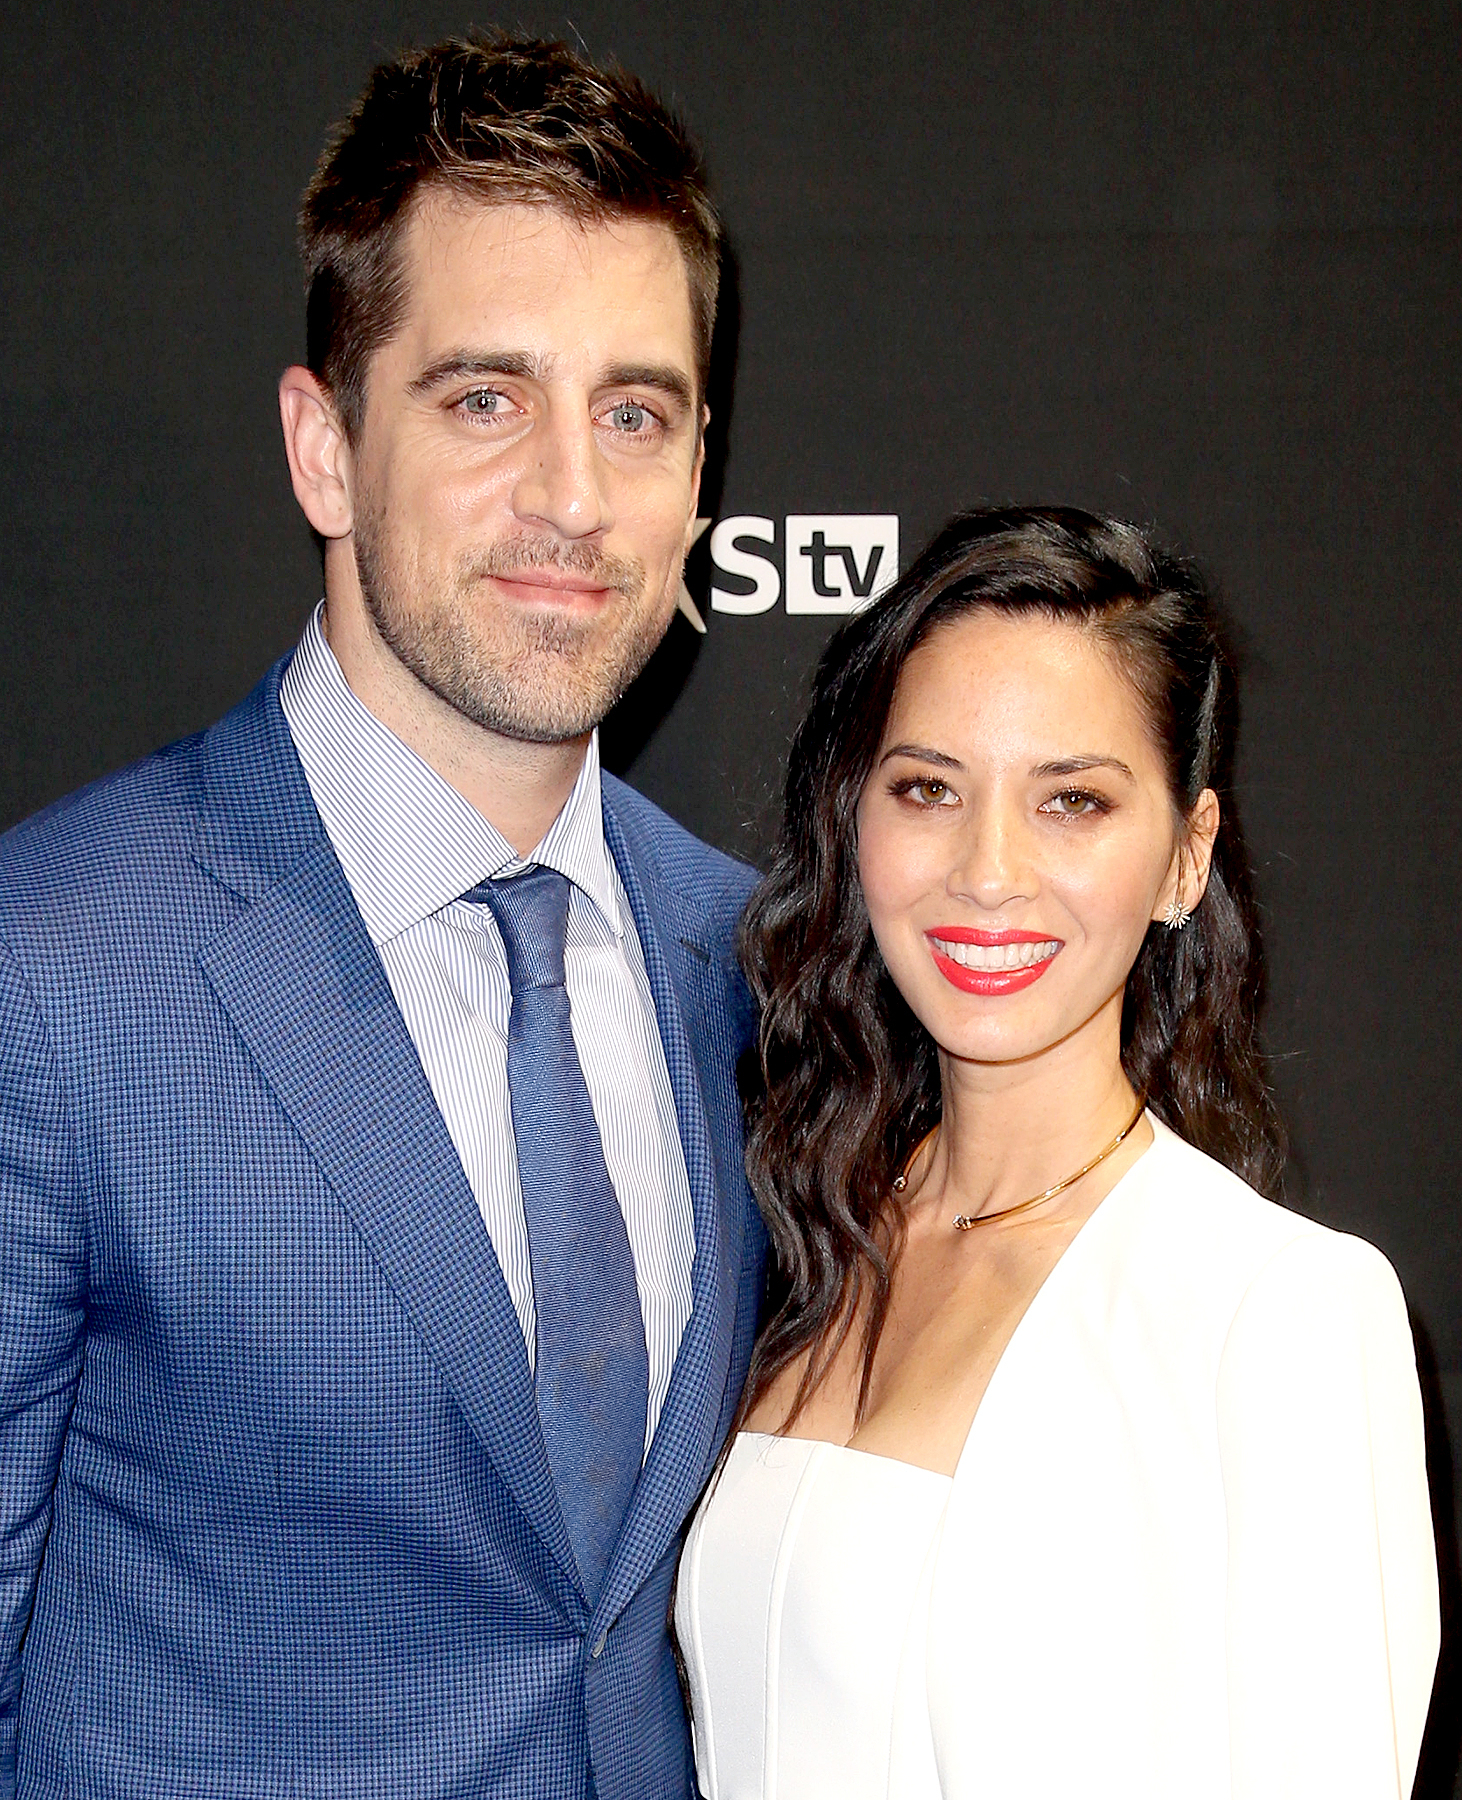 Aaron Rodgers and Olivia Munn attend the DirecTV and Pepsi Super Saturday Night featuring Red Hot Chili Peppers at Pier 70 on February 6, 2016 in San Francisco, California.